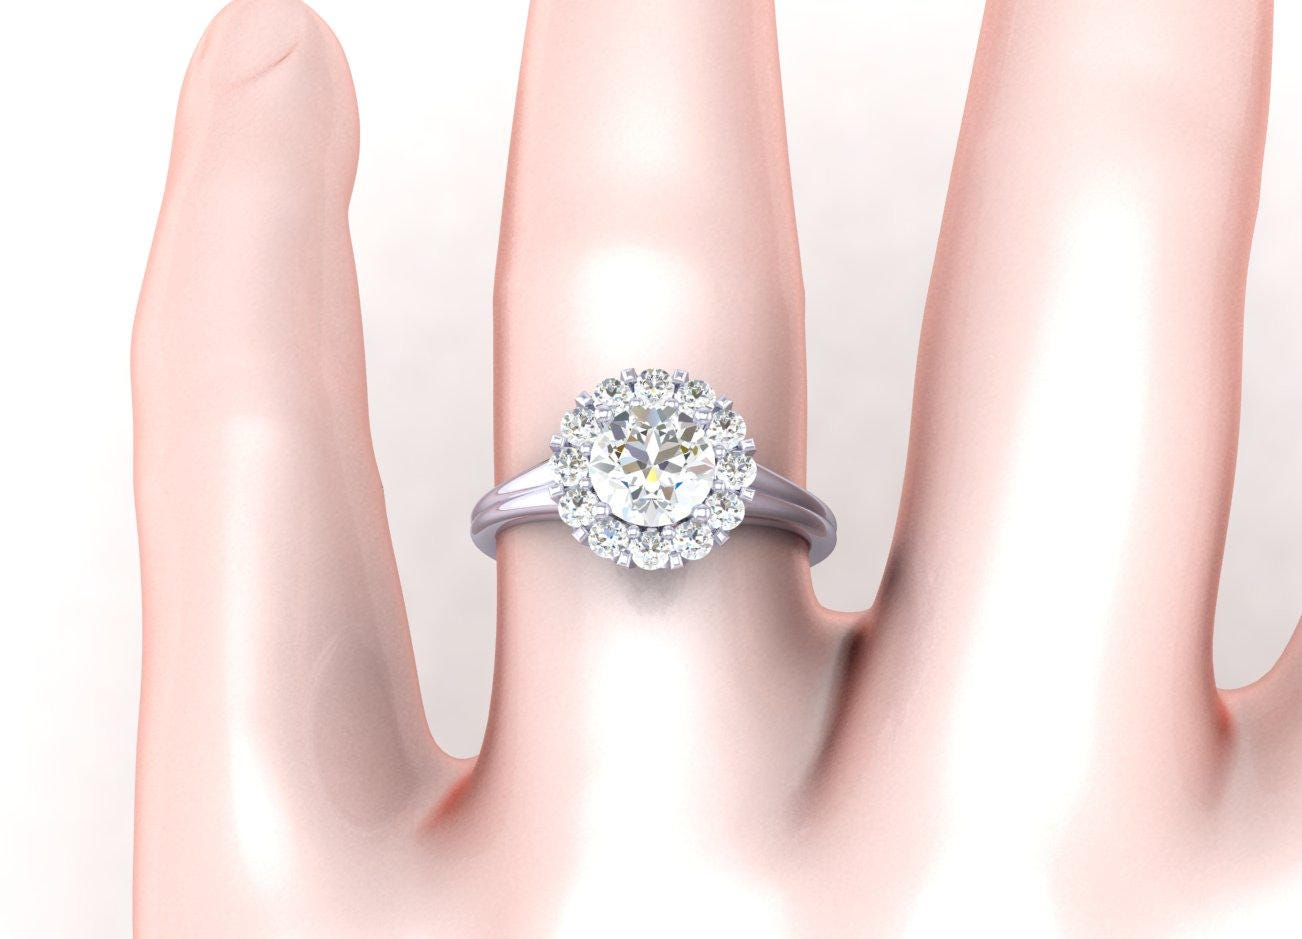 Crown Halo Engagement Ring- Wedding Ring -AnniversaryRing with a ...